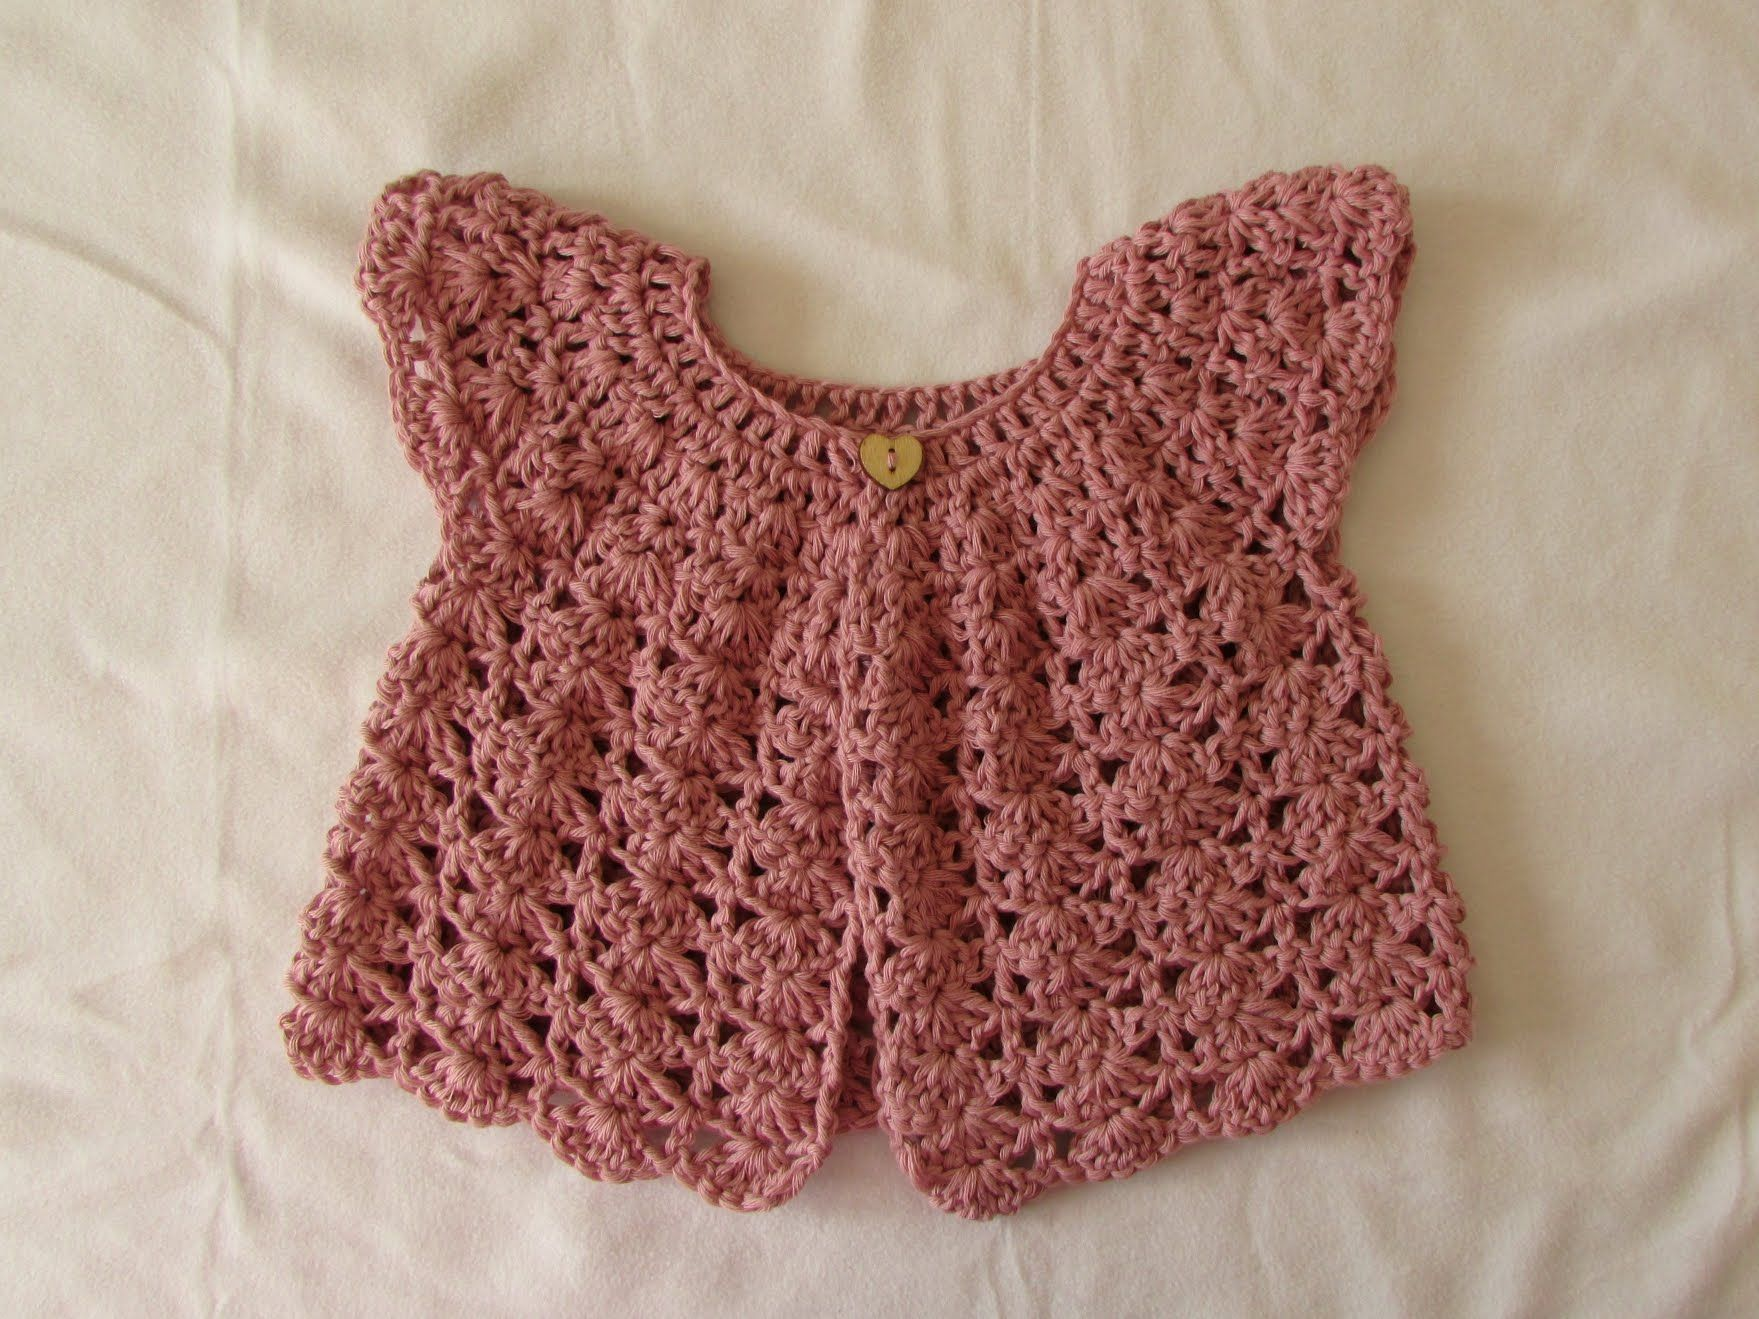 This tutorial will show you how to crochet an easy cardigan how to crochet a pretty shell stitch cardigan sweater baby and girl bankloansurffo Image collections